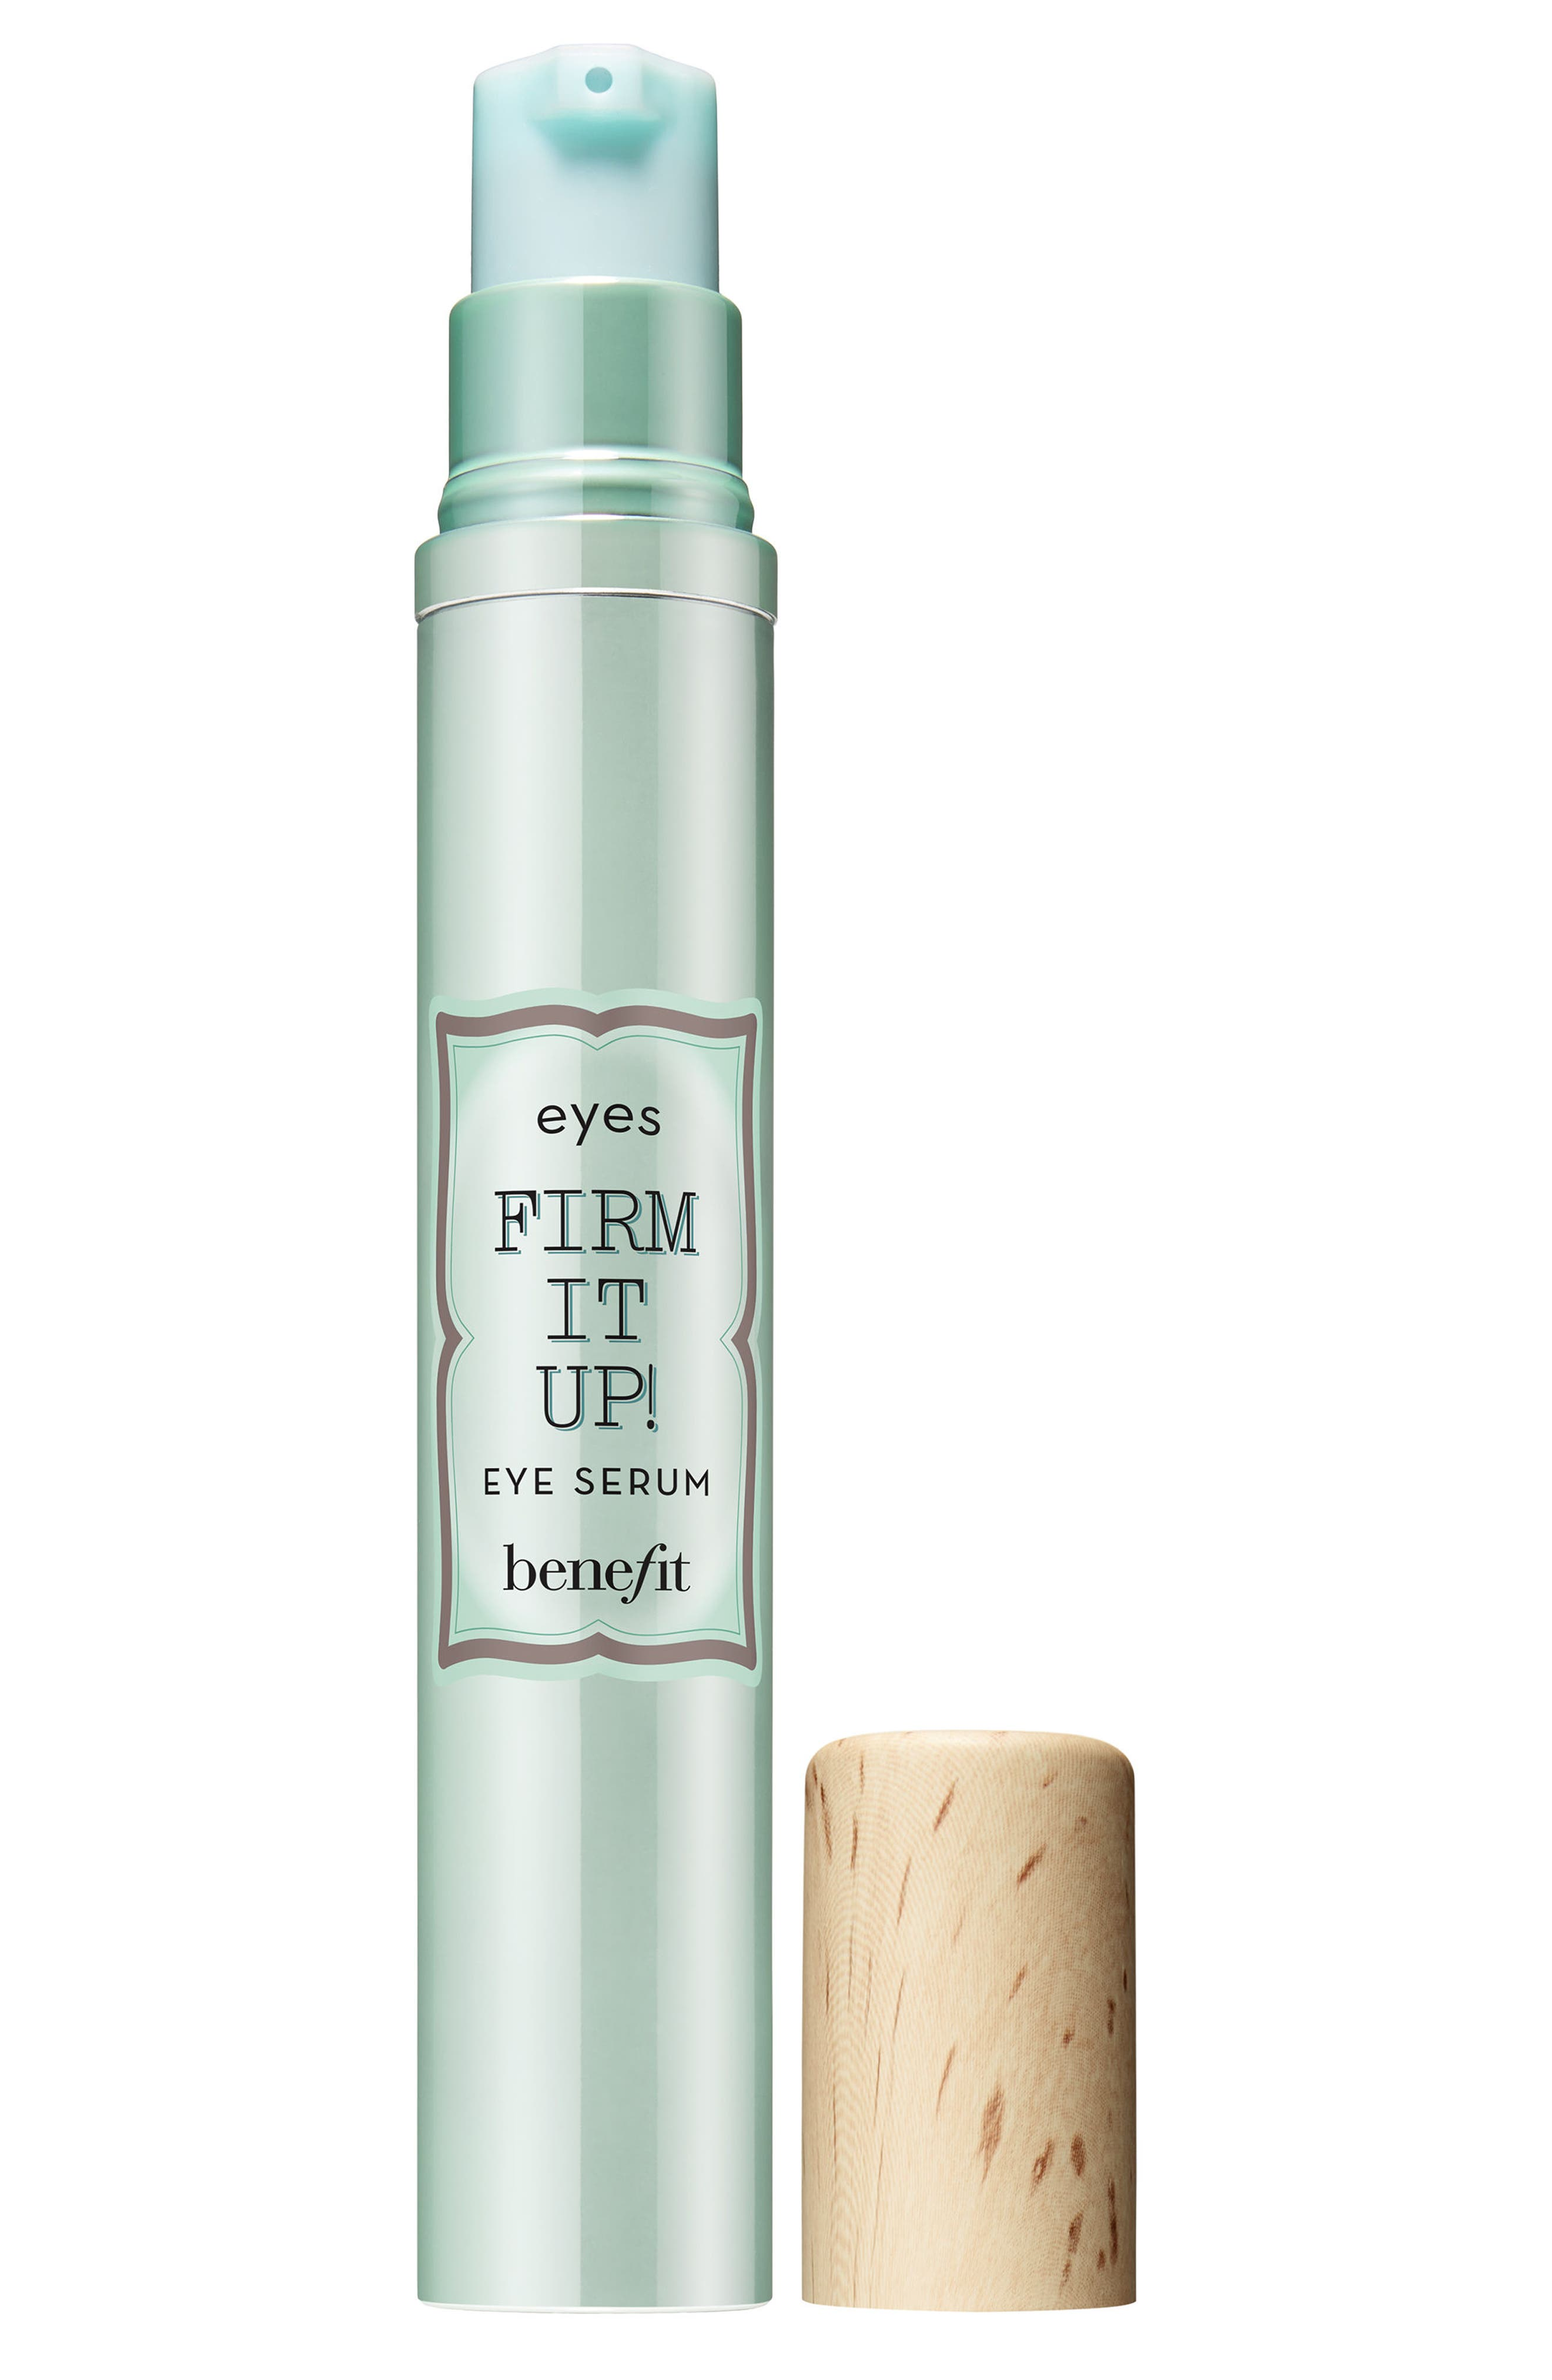 Benefit Firm It Up! Eye Serum,                             Main thumbnail 1, color,                             No Color